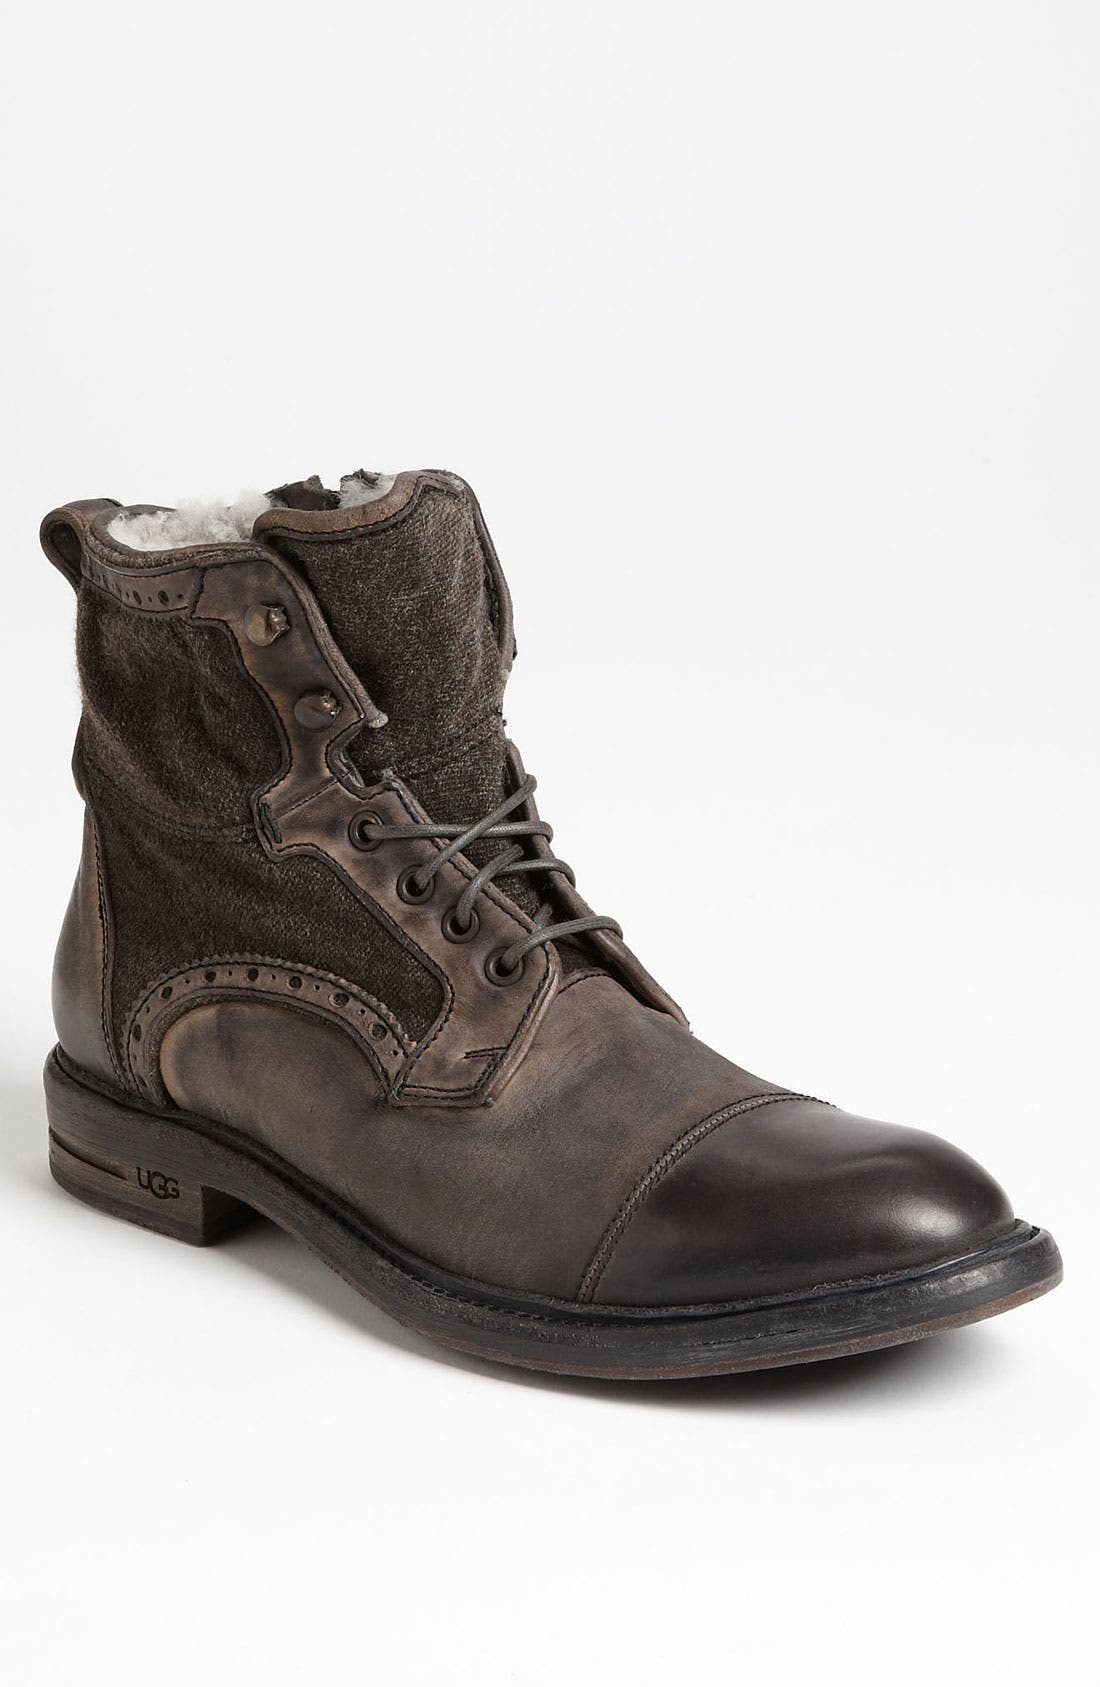 Main Image - UGG® Collection 'Malden' Cap Toe Boot (Men)